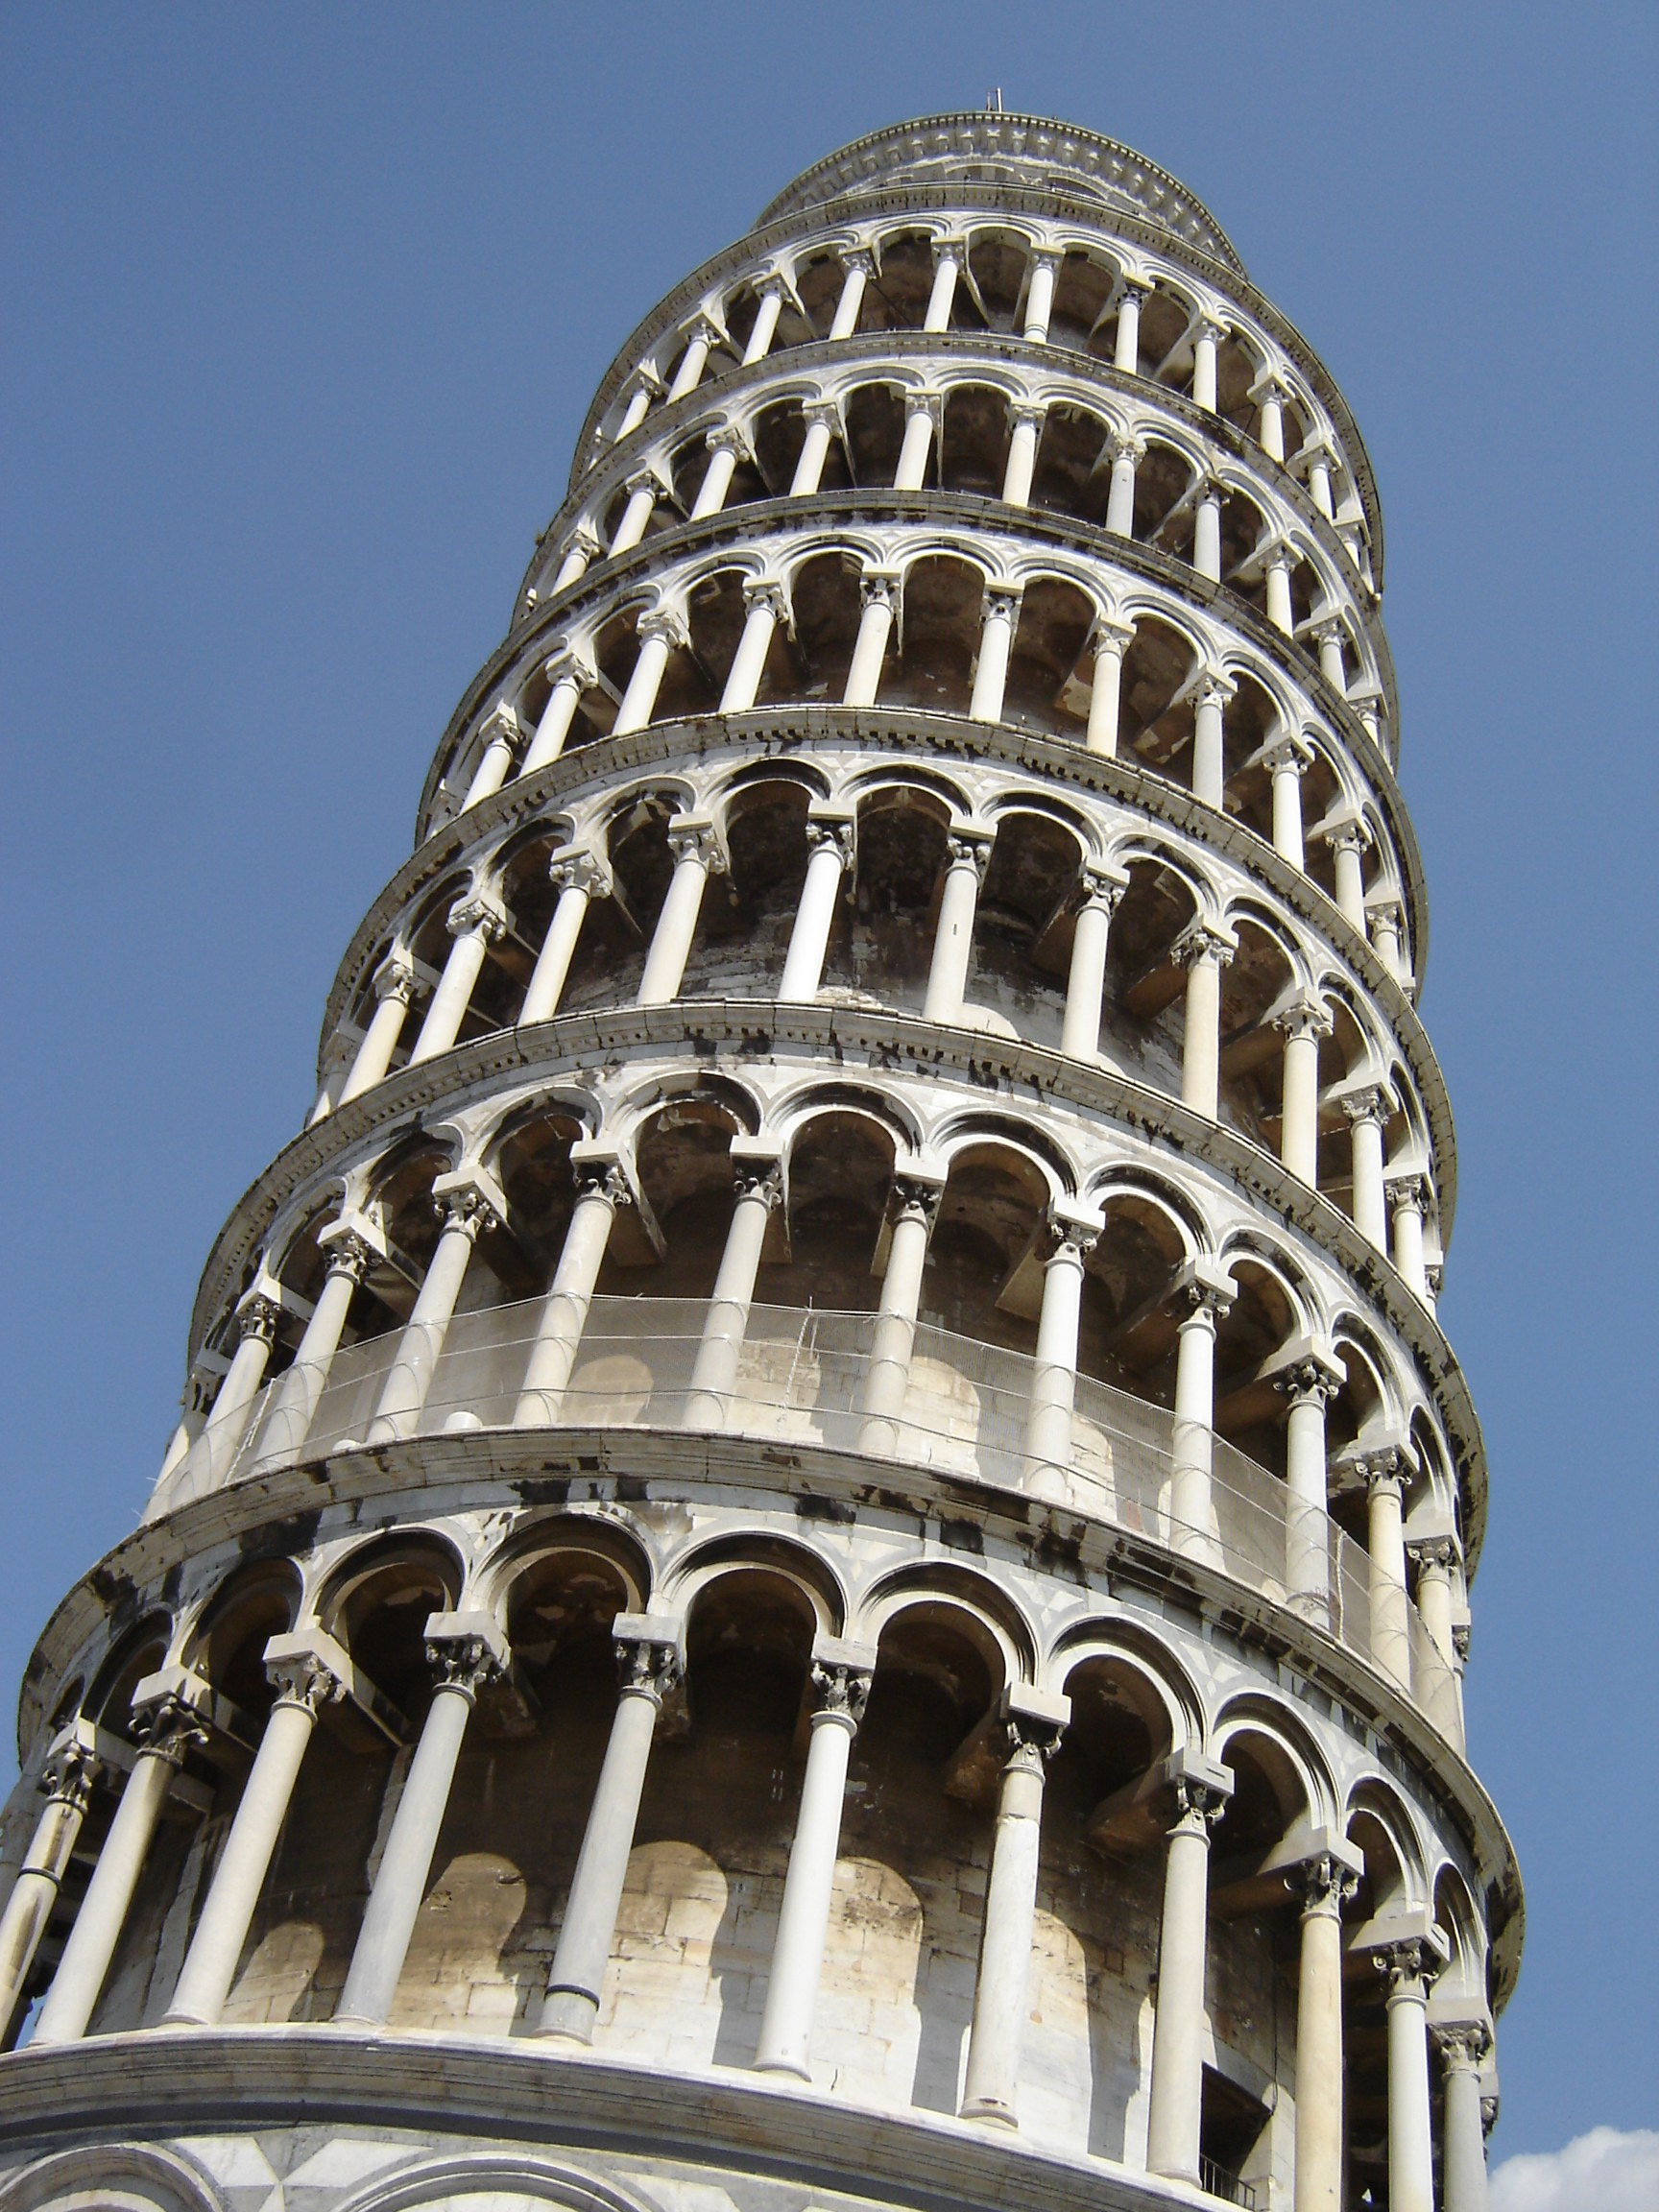 Facts About The Leaning Tower of Pisa in Italy Pisa Italy Leaning Tower of